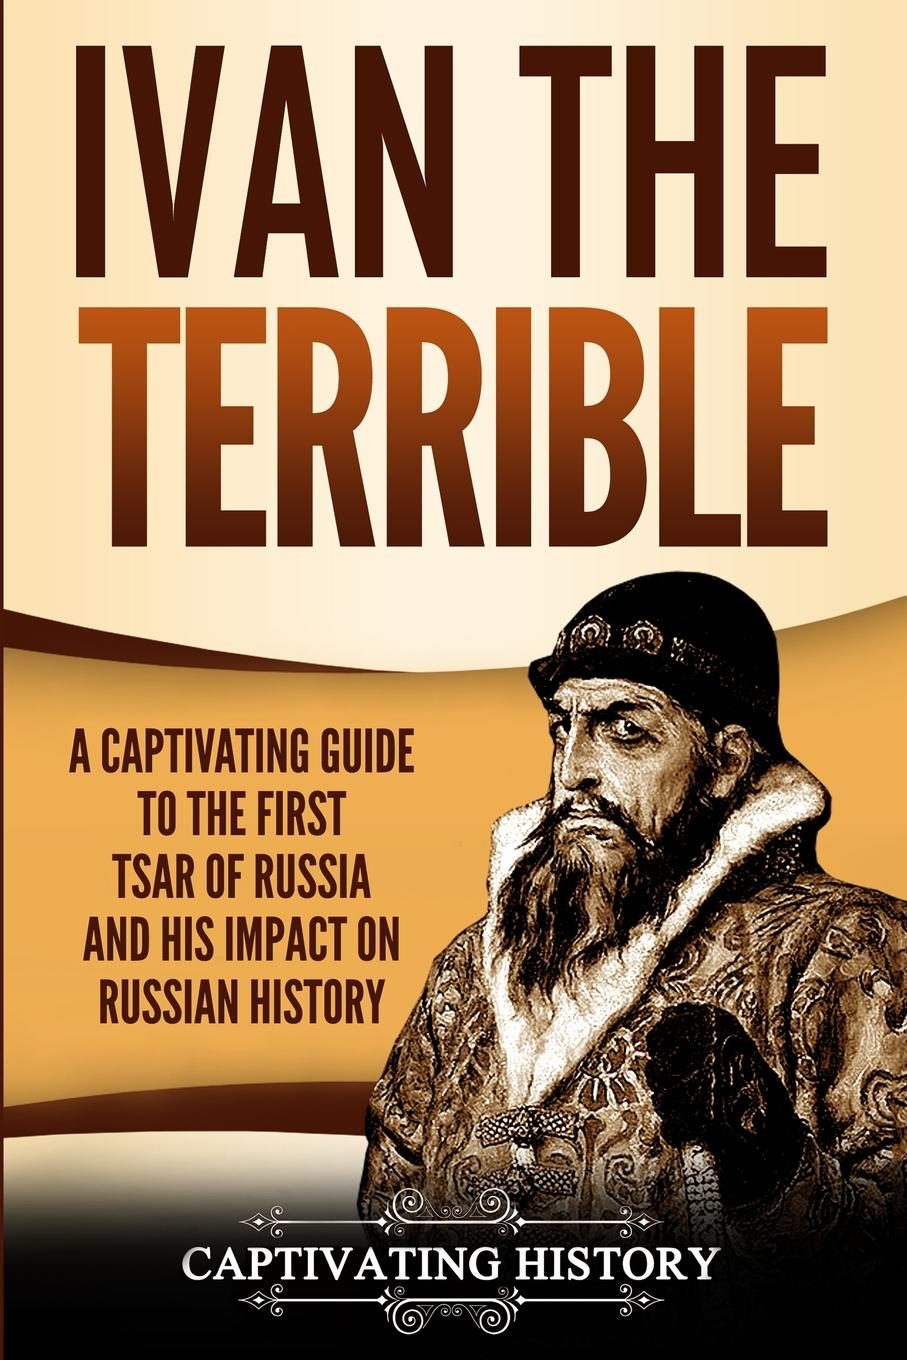 Captivating History Ivan the Terrible. A Captivating Guide to the First Tsar of Russia and His Impact on Russian History